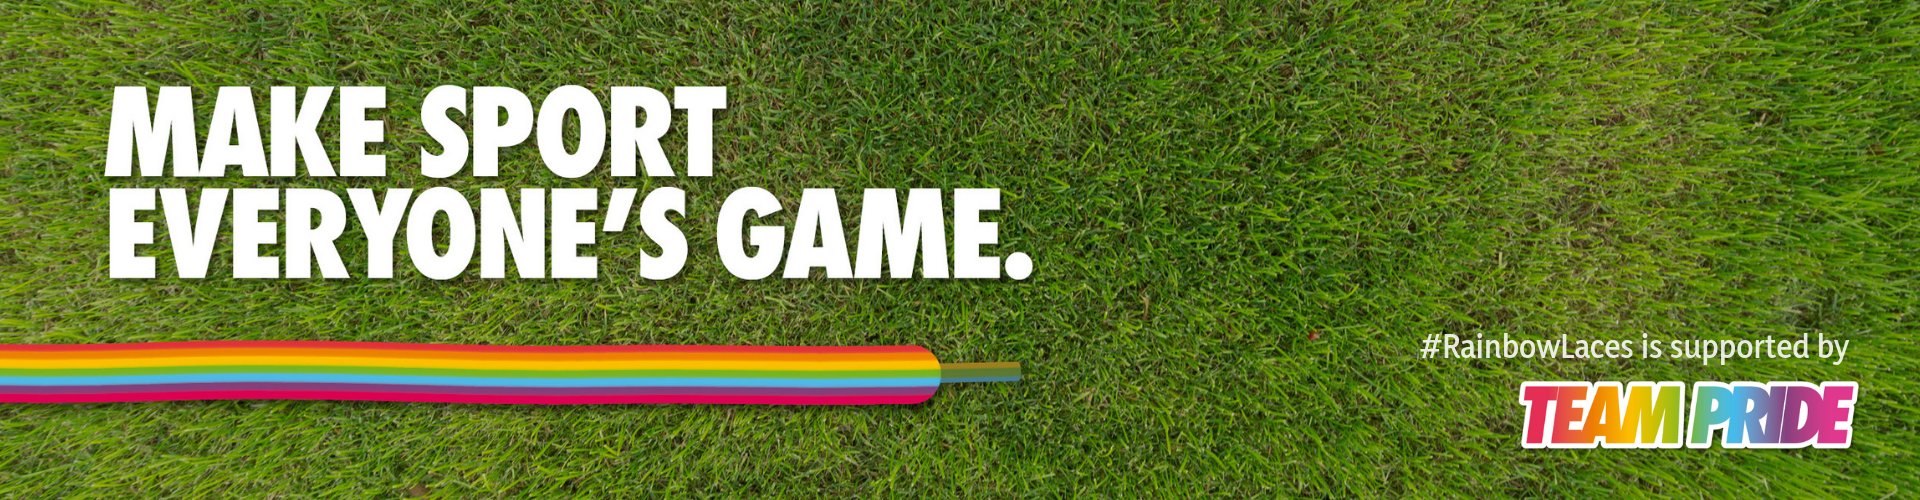 Rainbow Laces banner